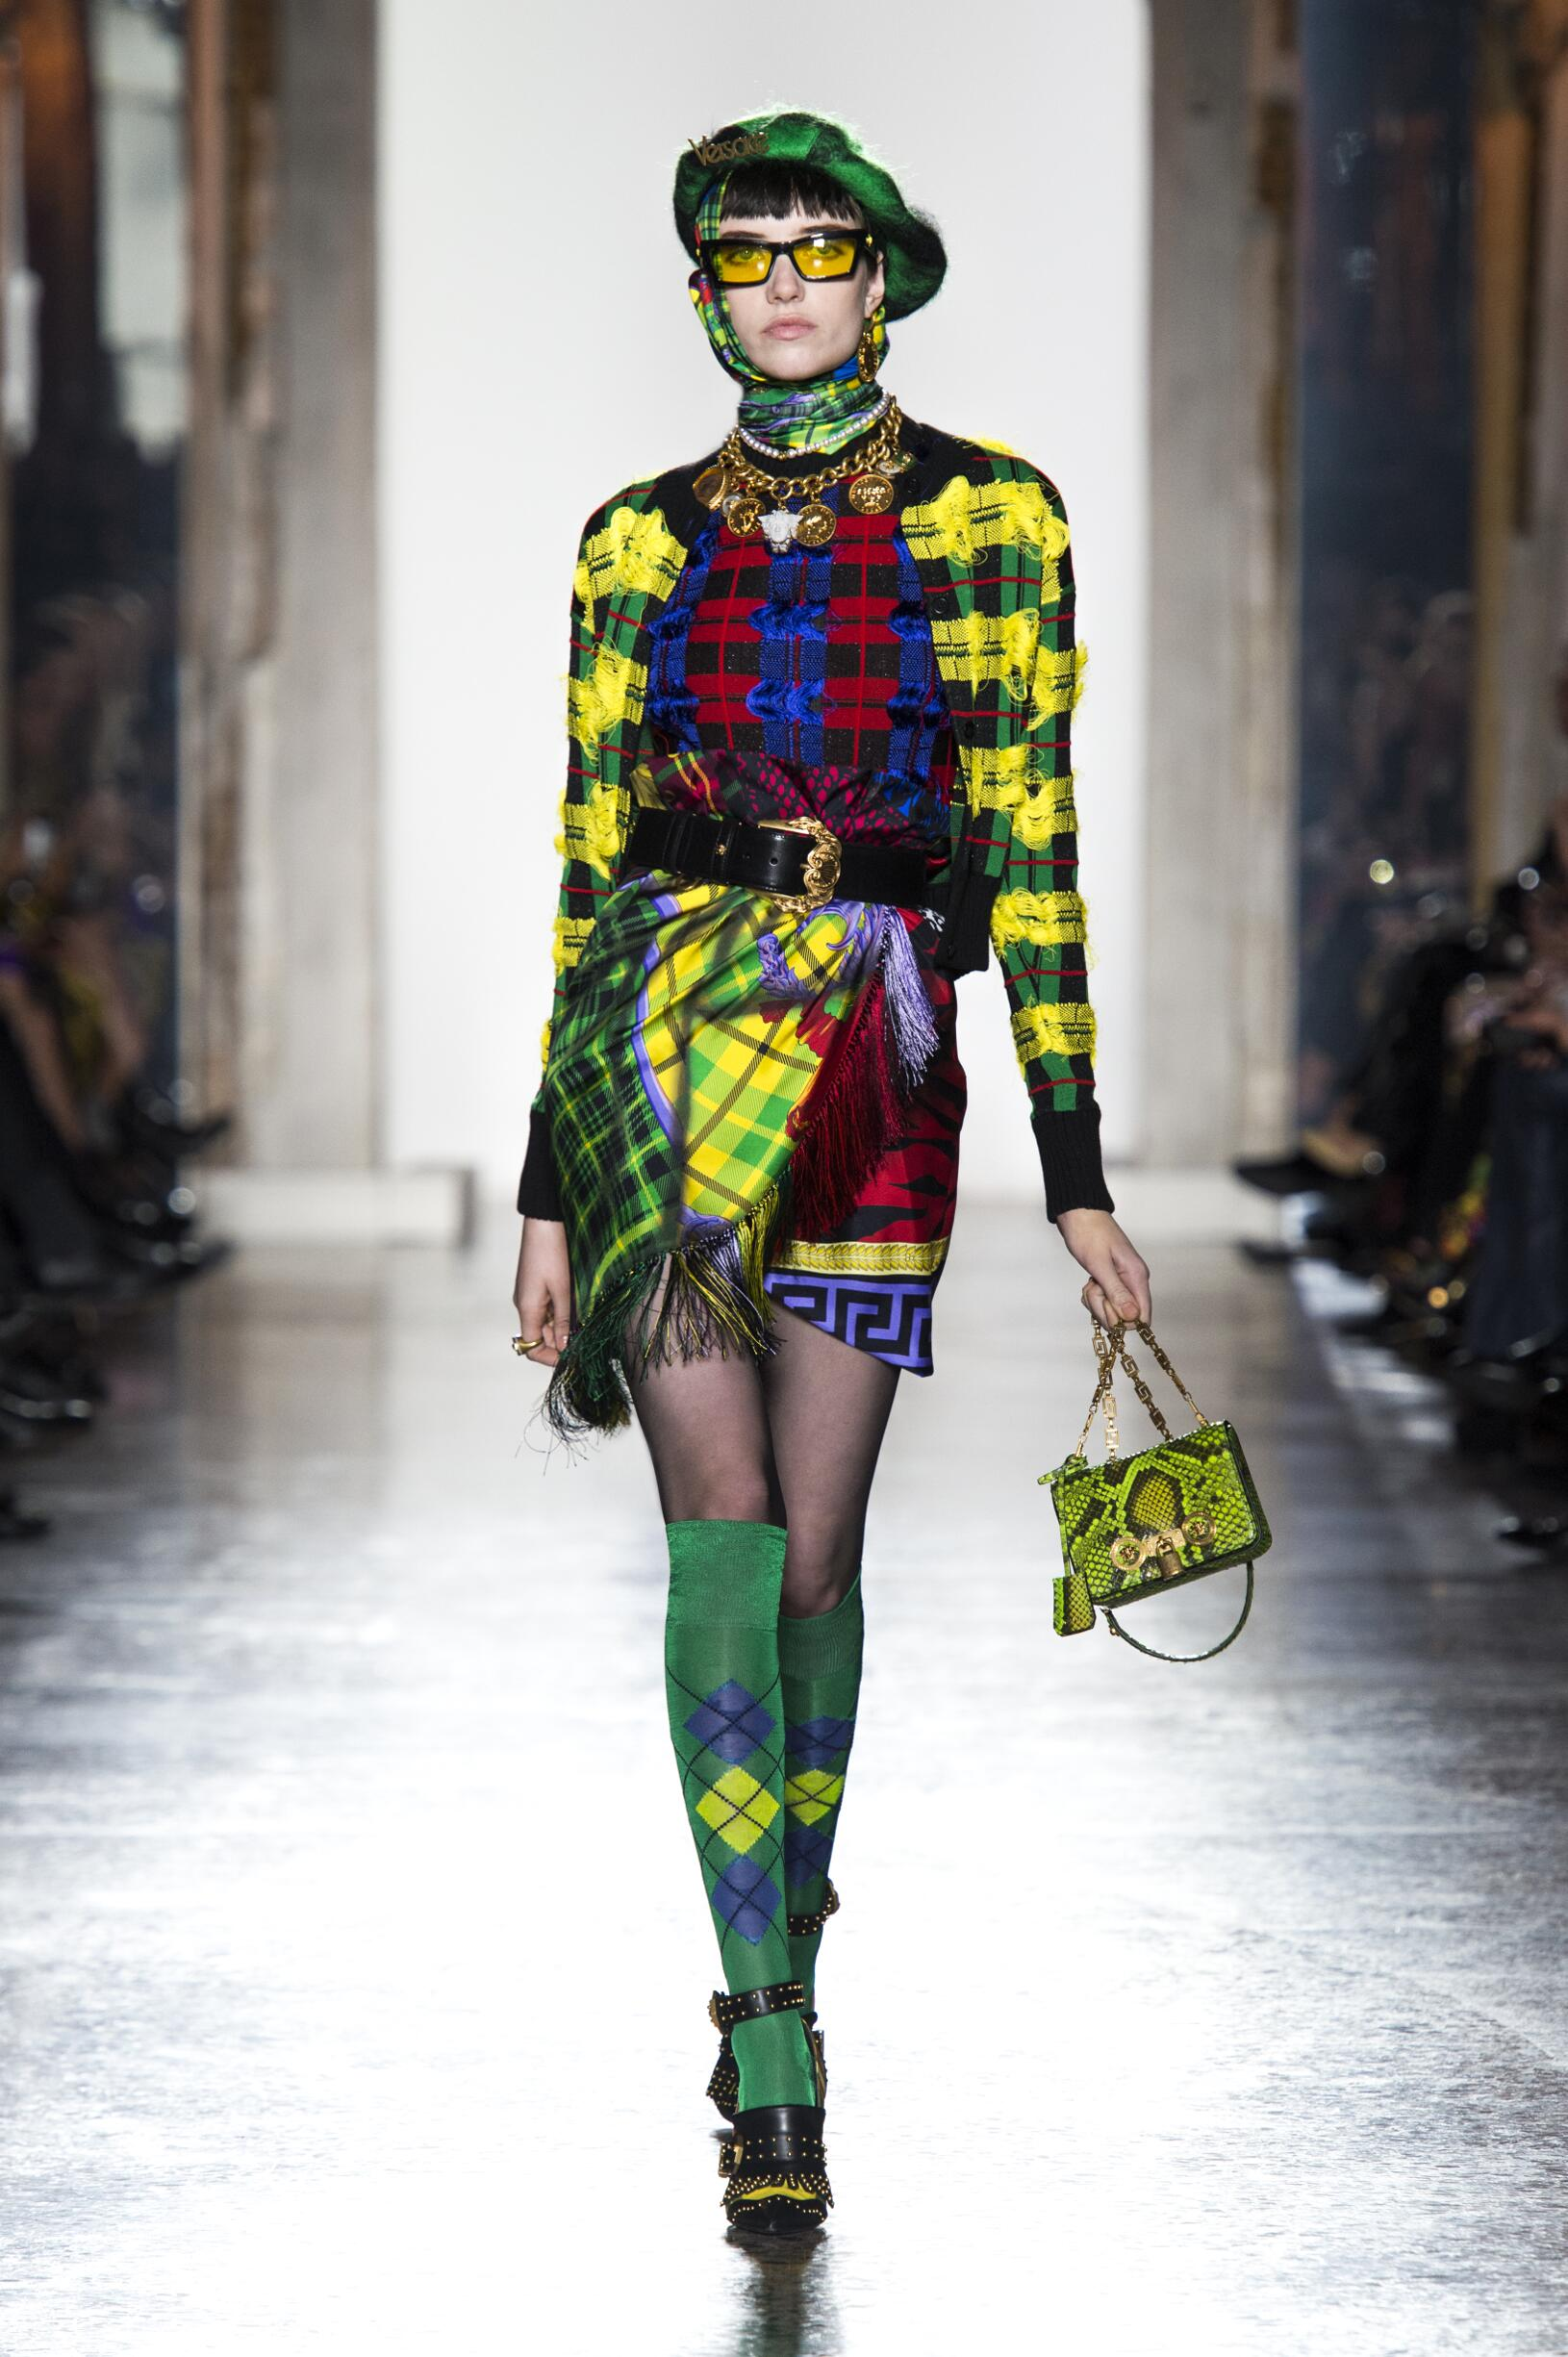 VERSACE FALL WINTER 2018 WOMEN'S COLLECTION | The Skinny Beep